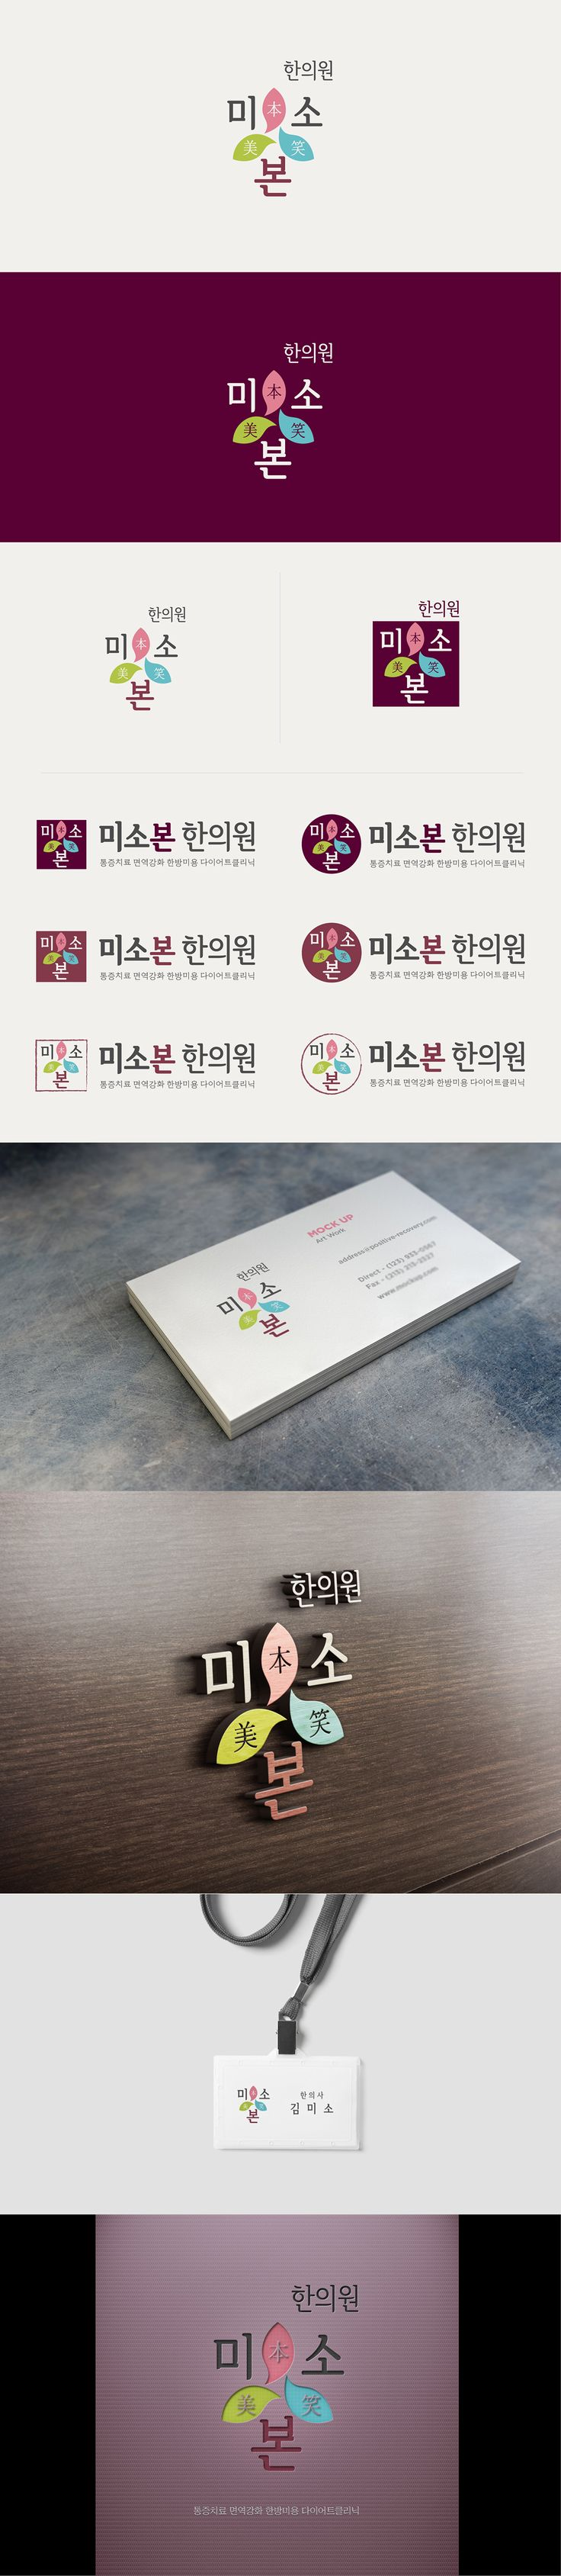 한의원 로고 디자인 oriental medical clinic logo on Behance